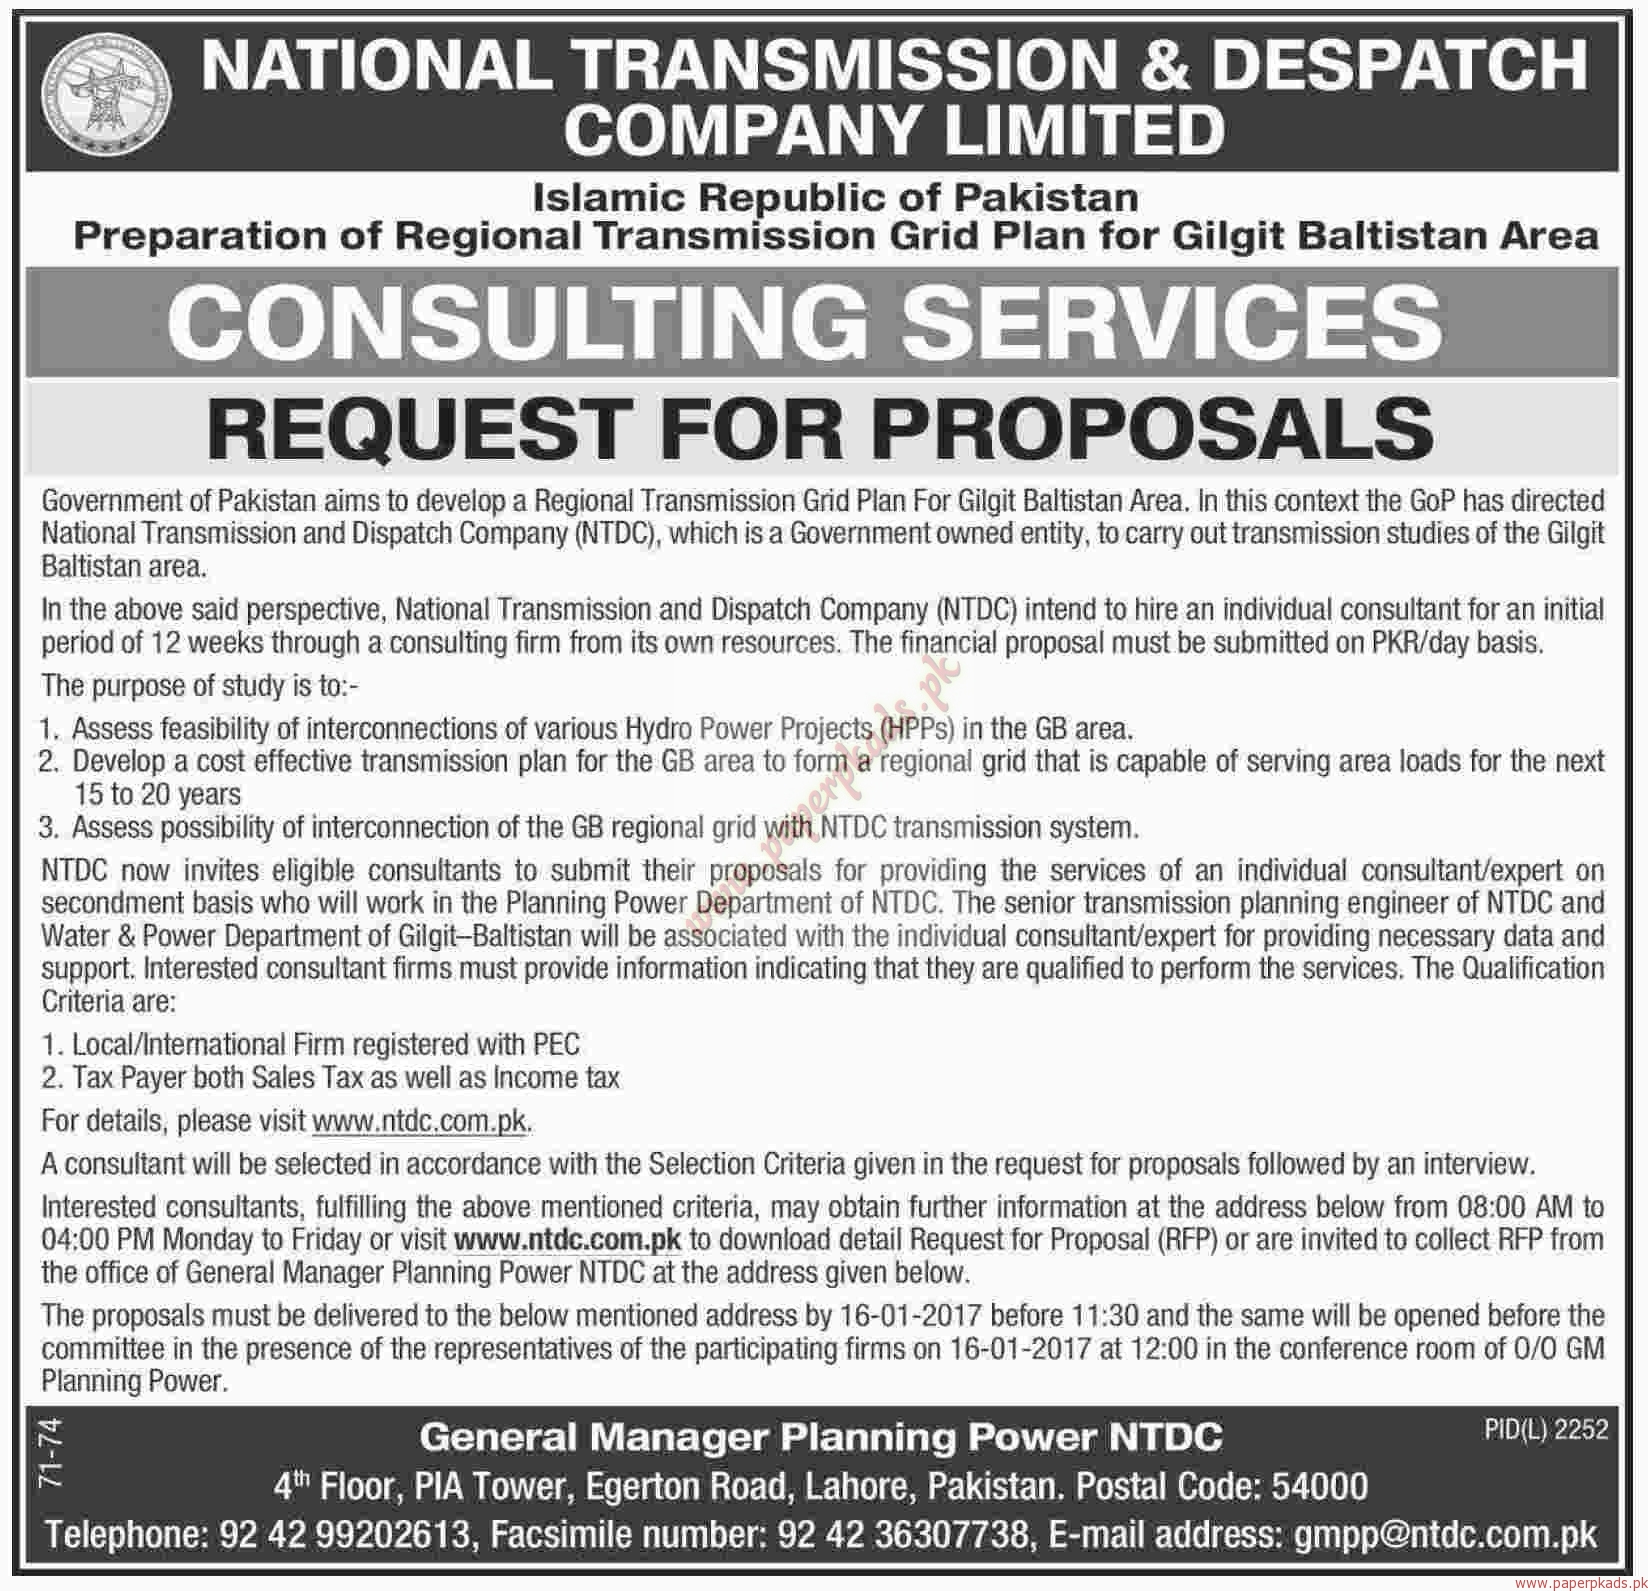 National Transmission and Despatch Company Limited Jobs - Dawn Jobs ads 05 January 2017